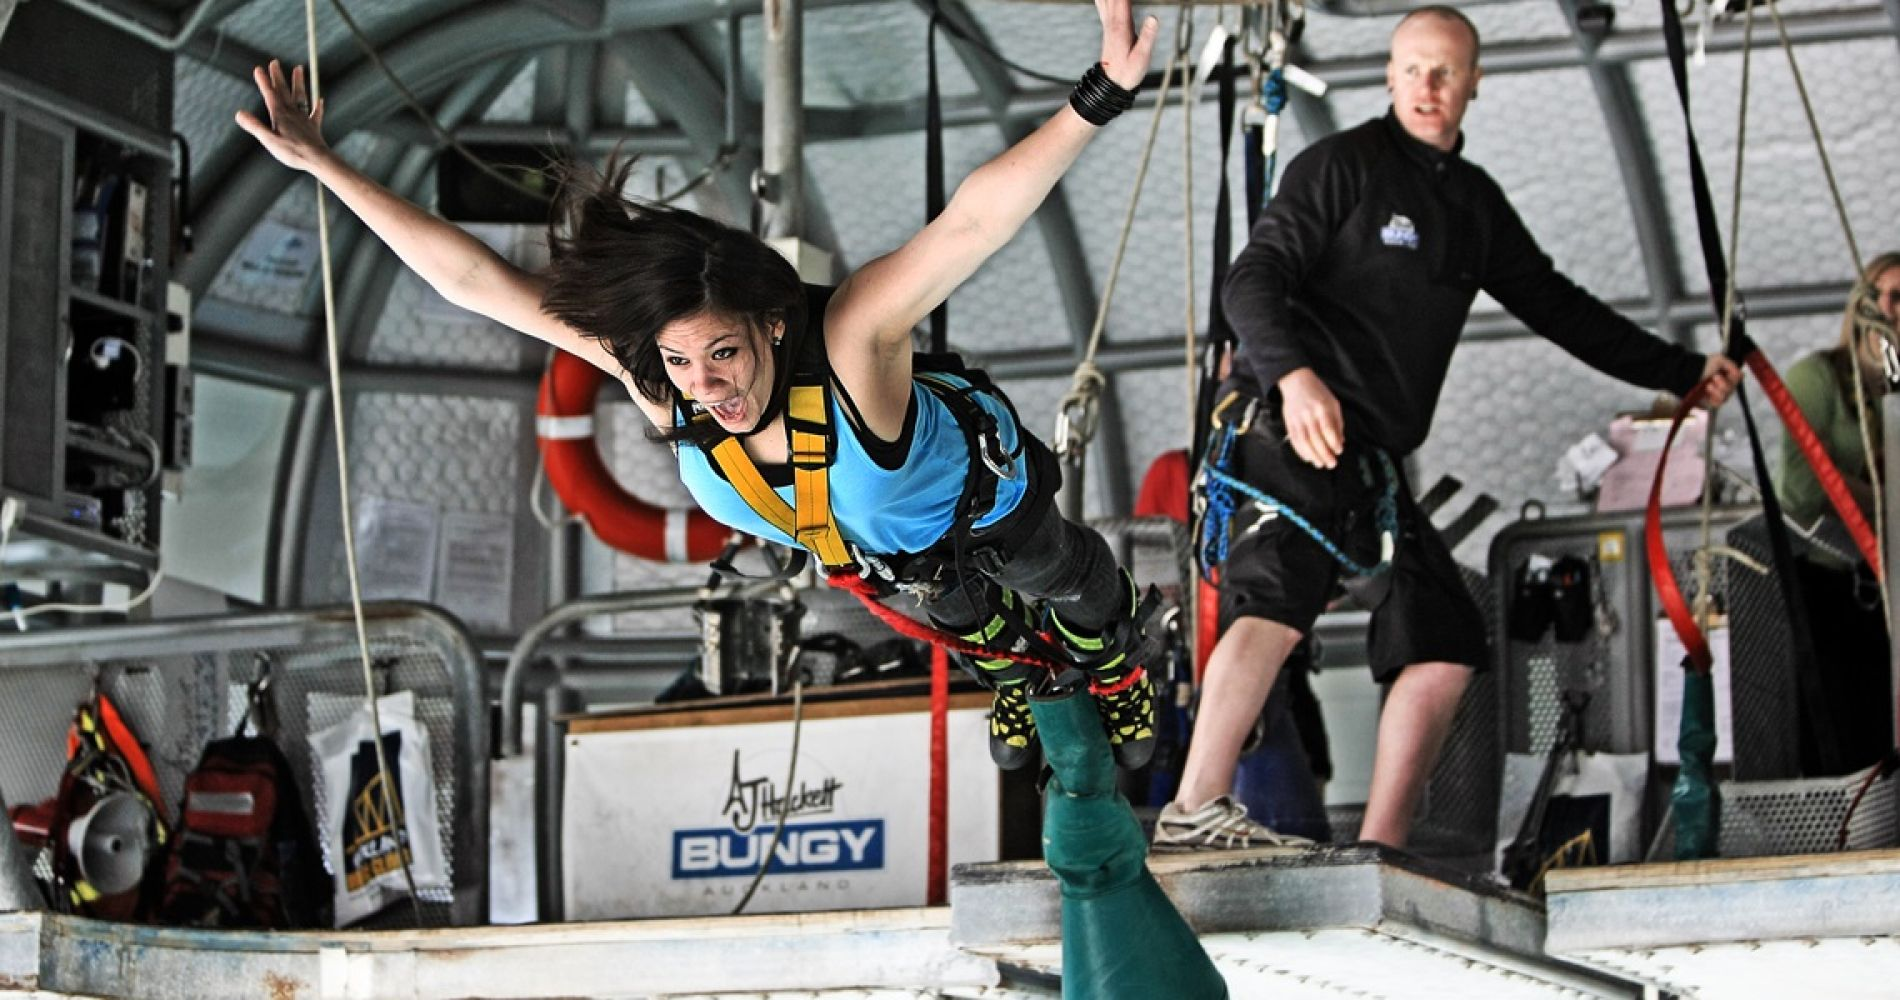 Auckland Bridge Bungy Jump Tinggly Experience Gifts